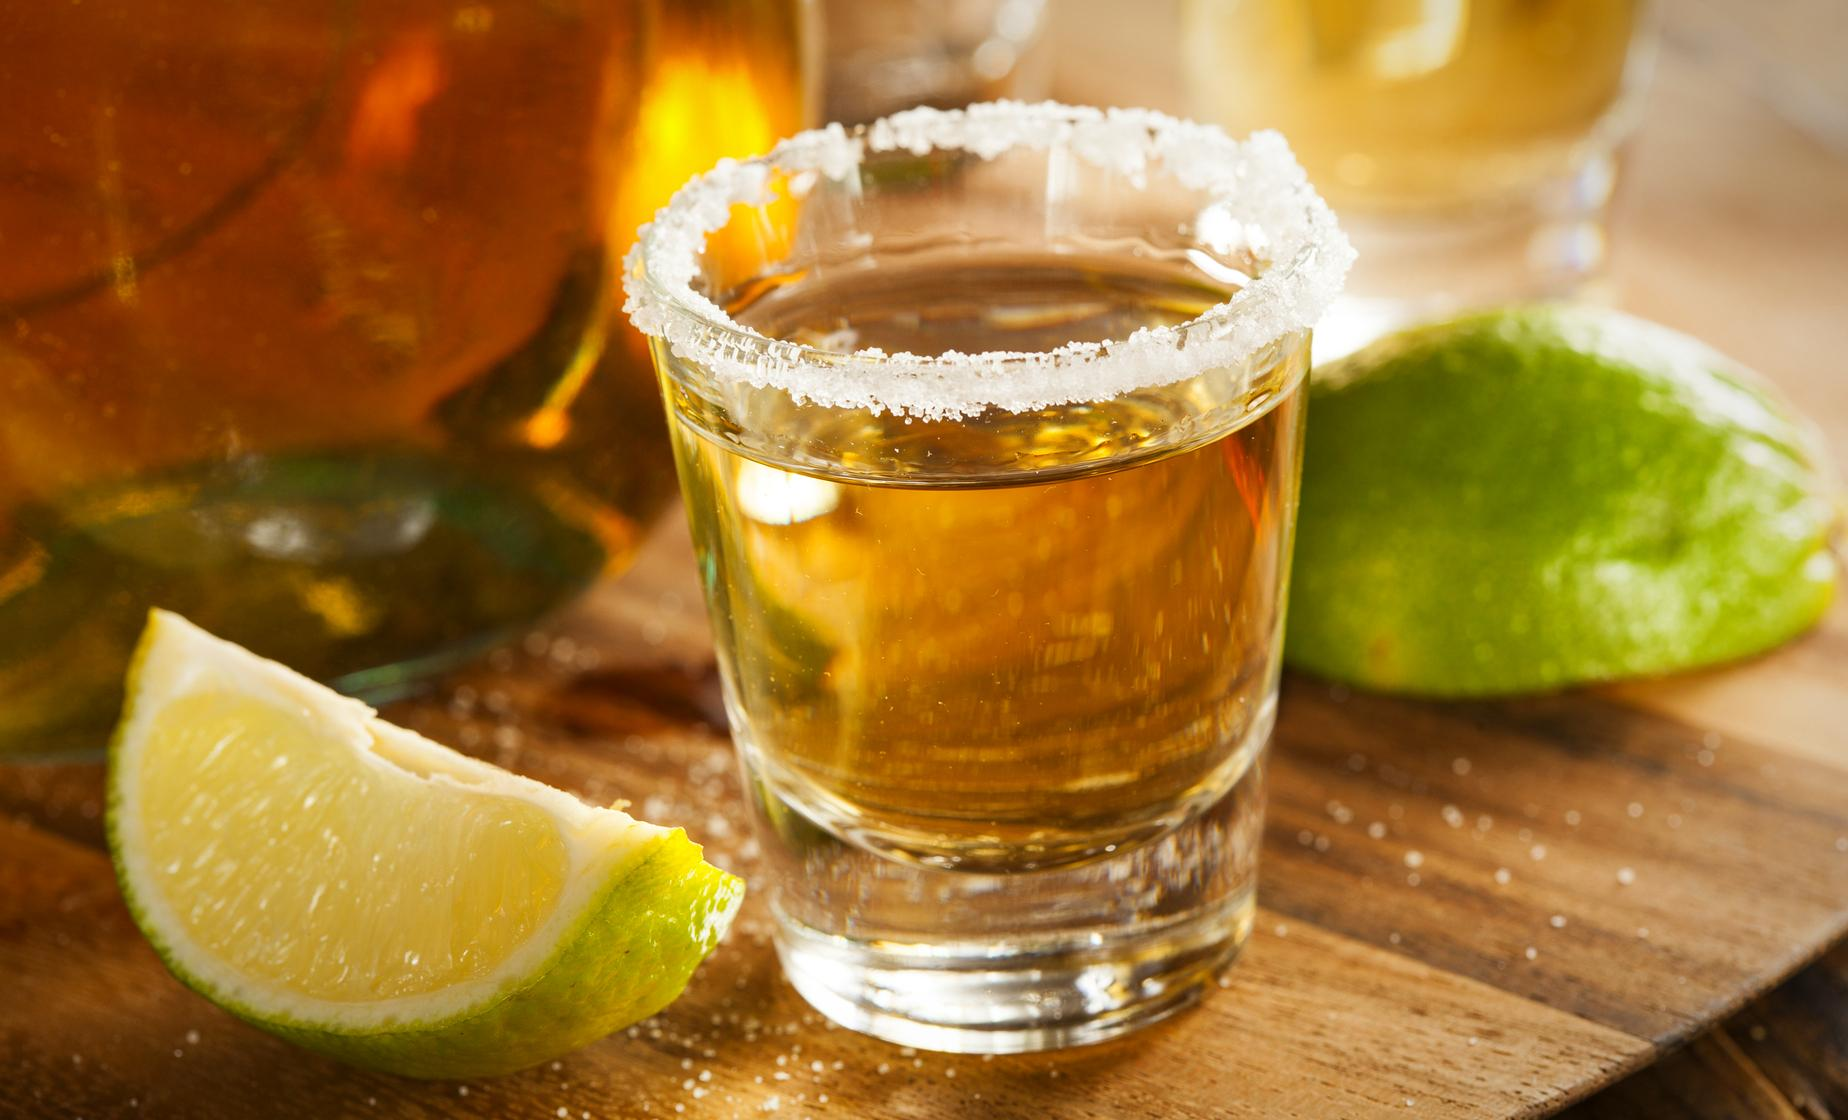 Experience Tequila, Tacos and Puerto Vallarta's Downtown